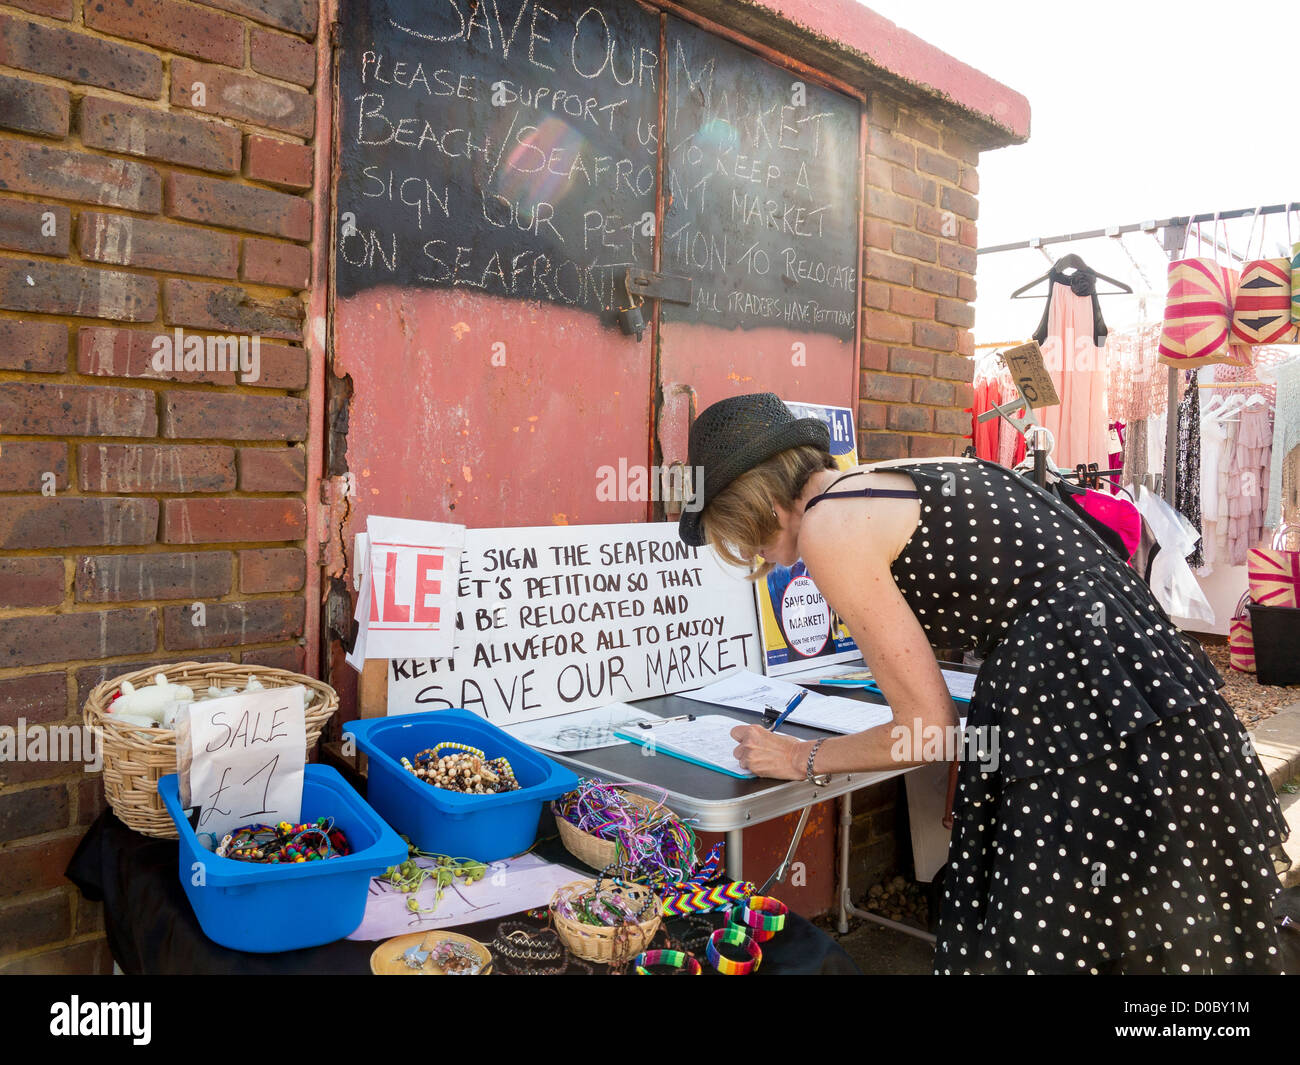 Woman signing petition to save West Pier market in Brighton & Hove - Stock Image